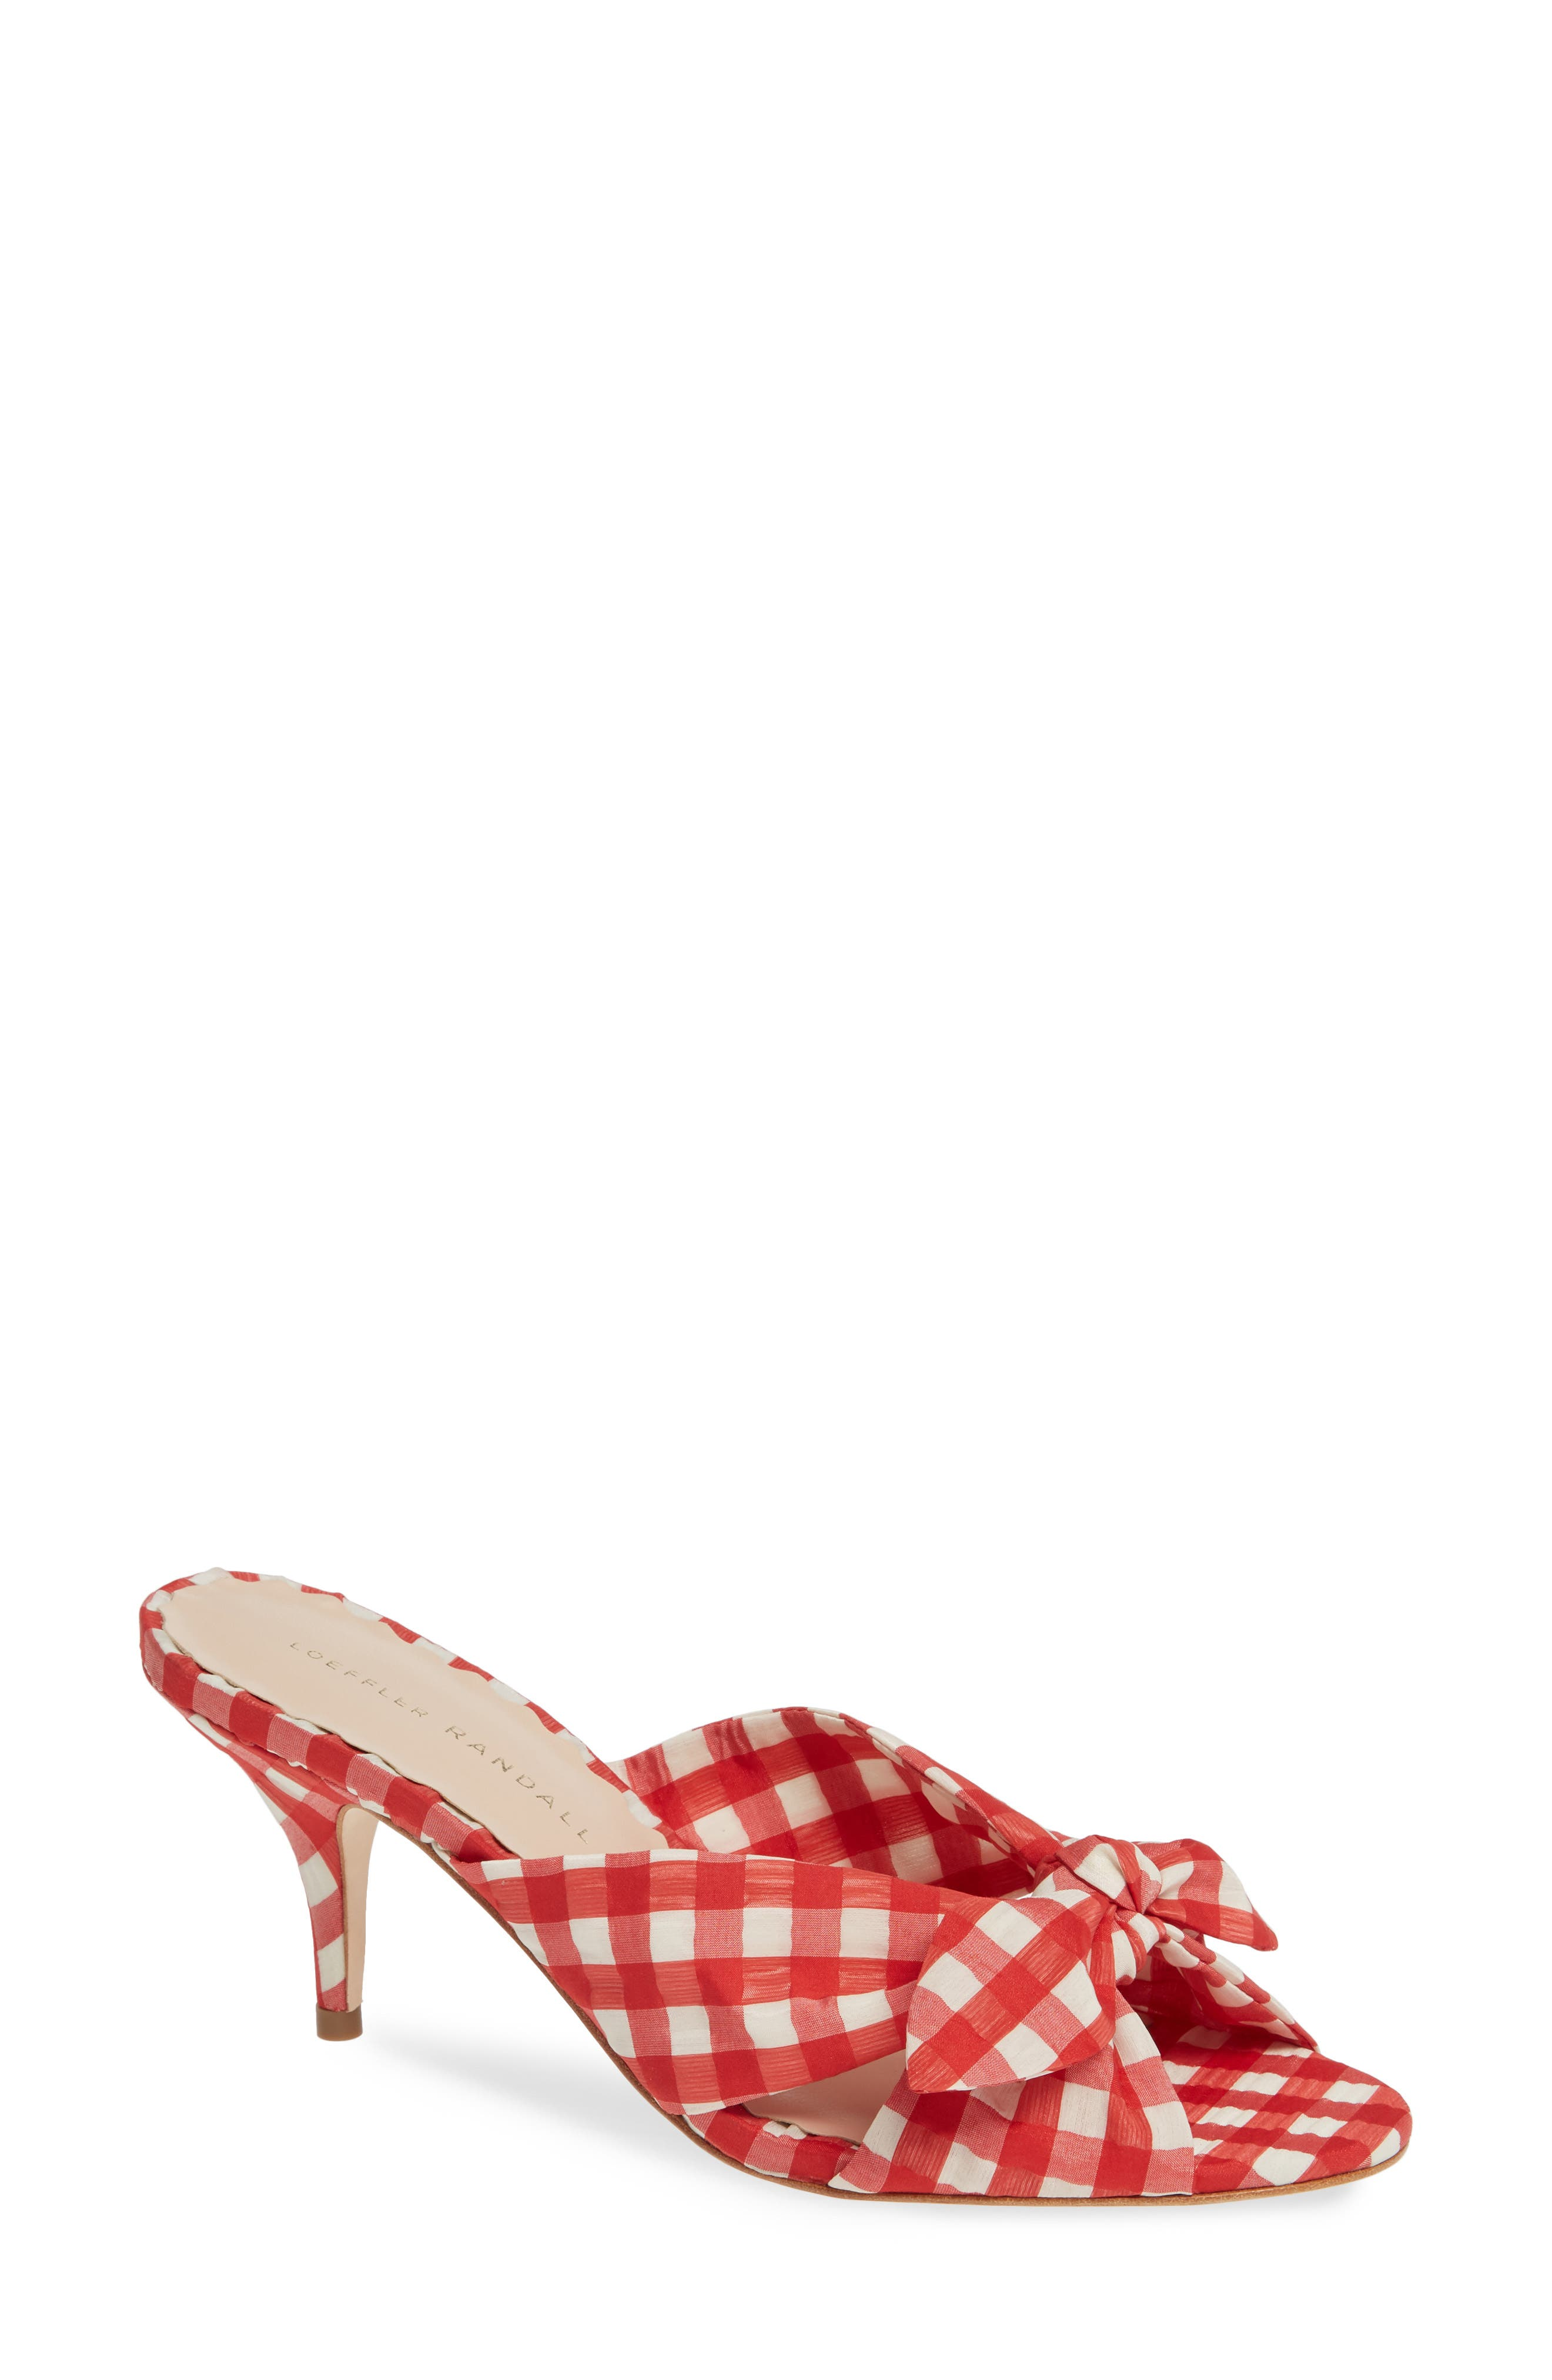 LOEFFLER RANDALL,                             Luisa Sandal,                             Main thumbnail 1, color,                             RED